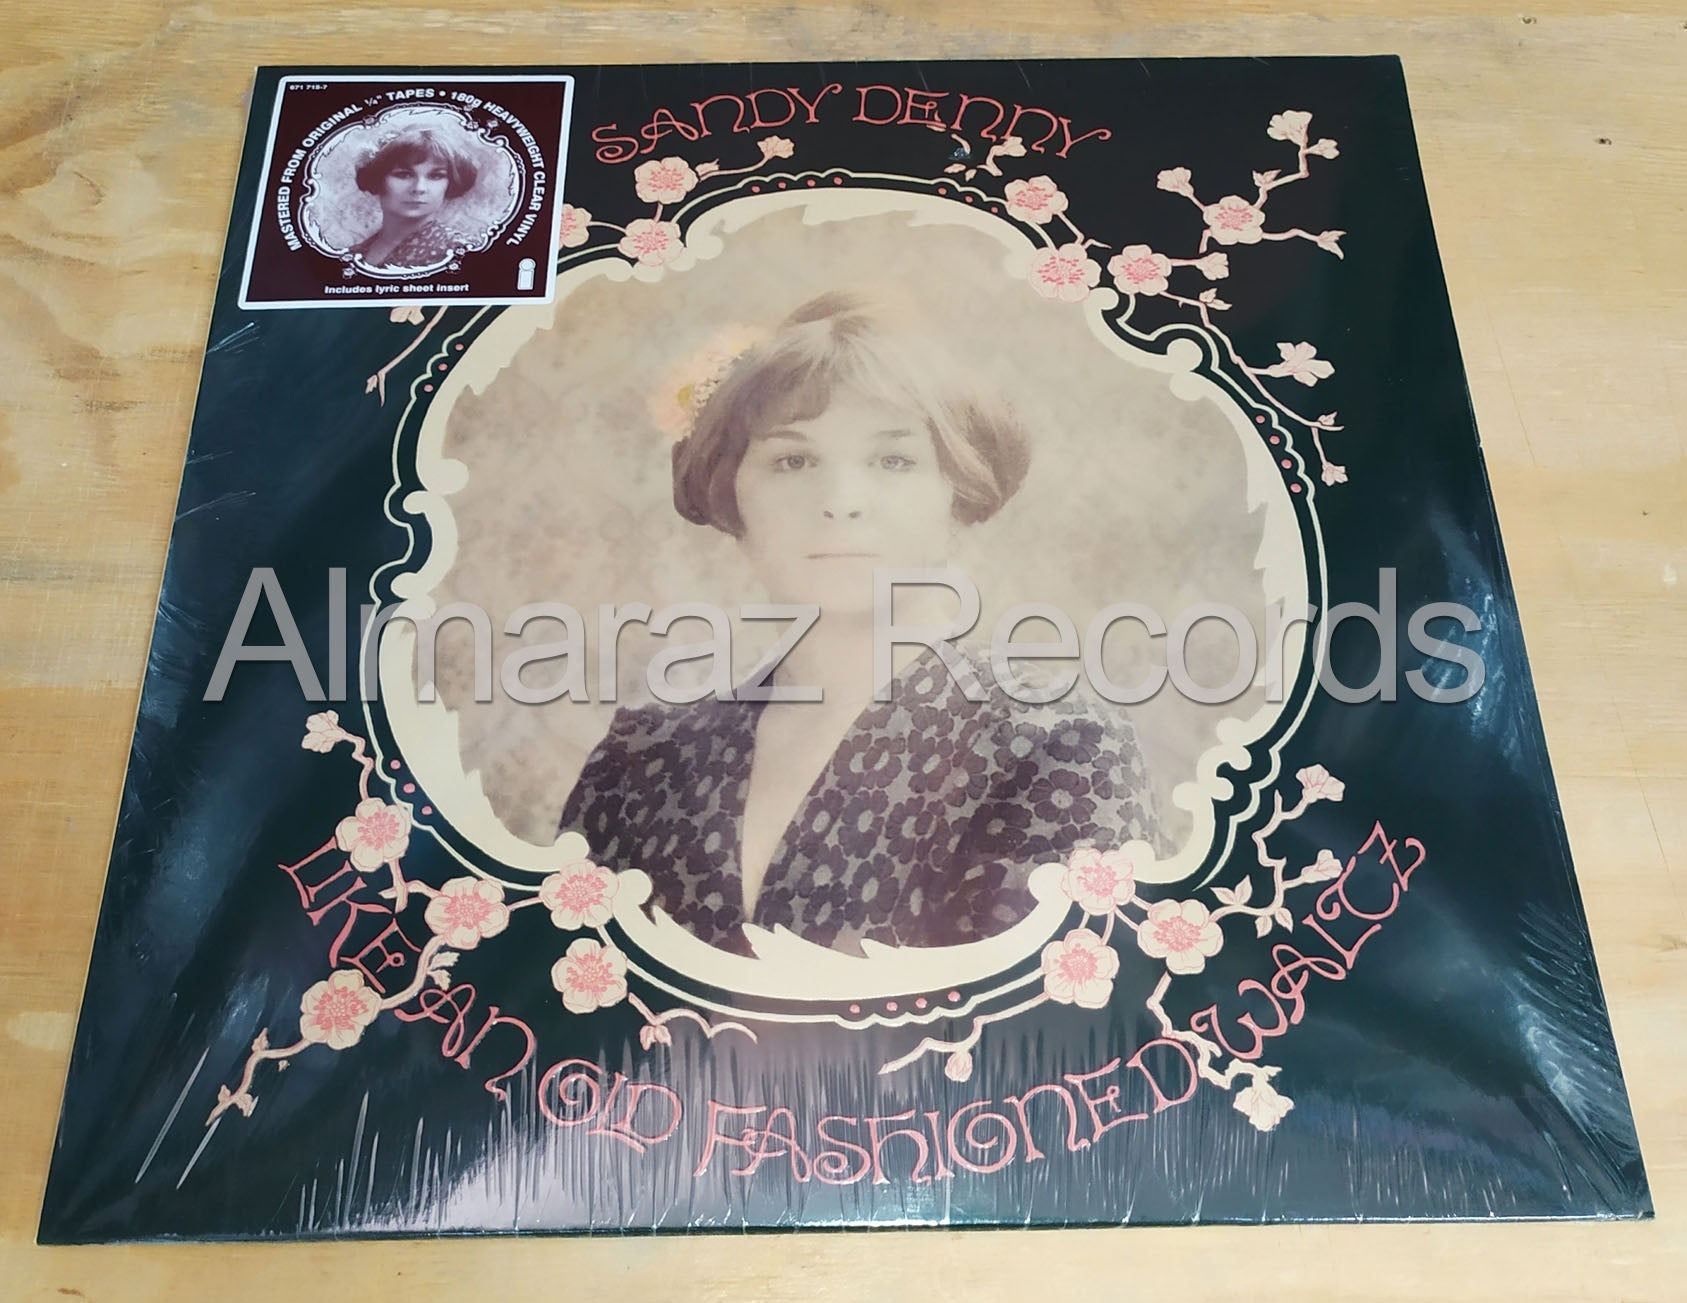 Sandy Denny Like And Old Fashioned Vinyl LP